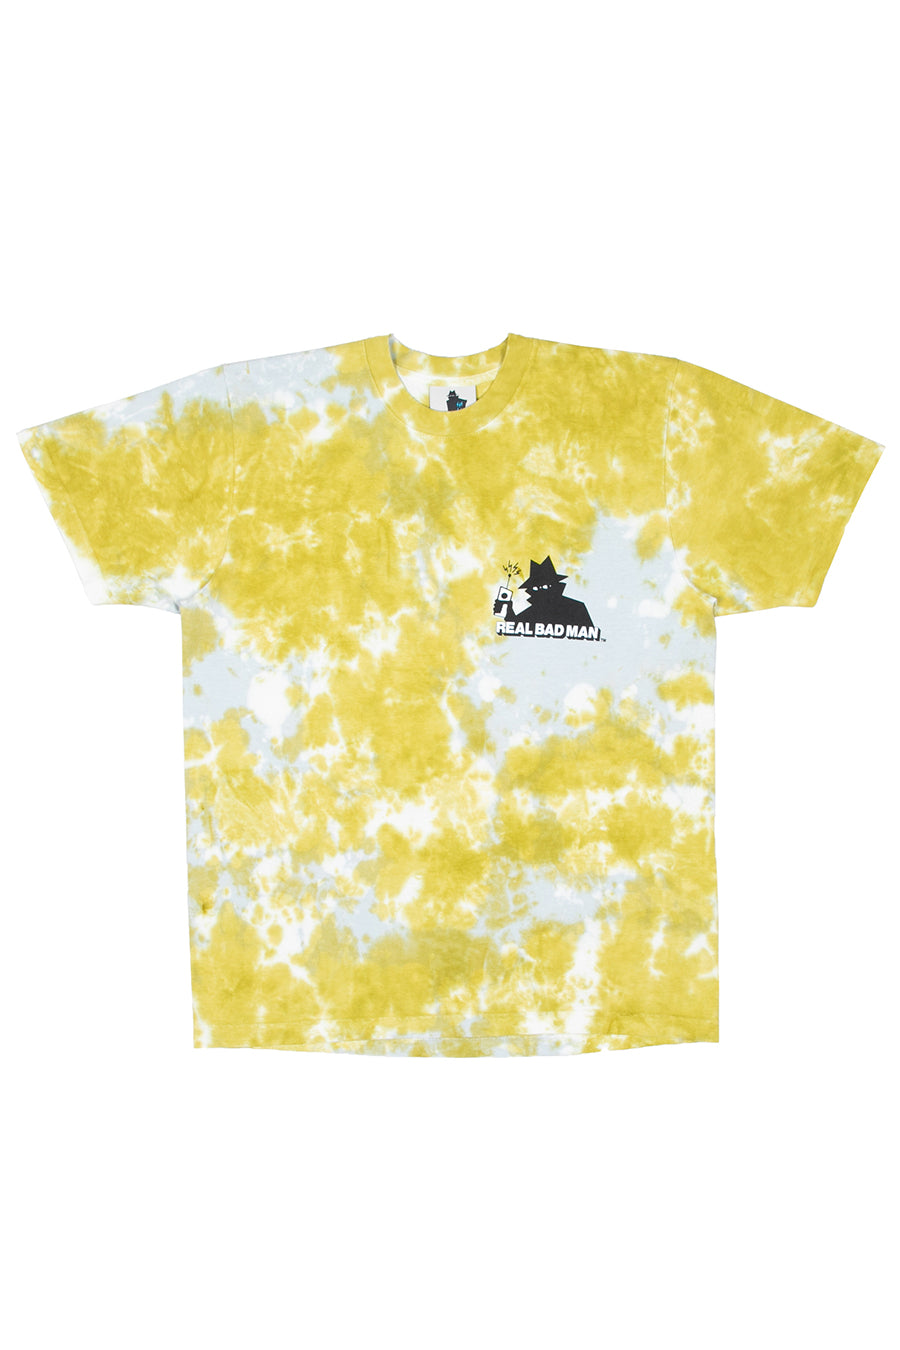 Real Bad Man - Yellow Tie Dye Logo T-Shirt